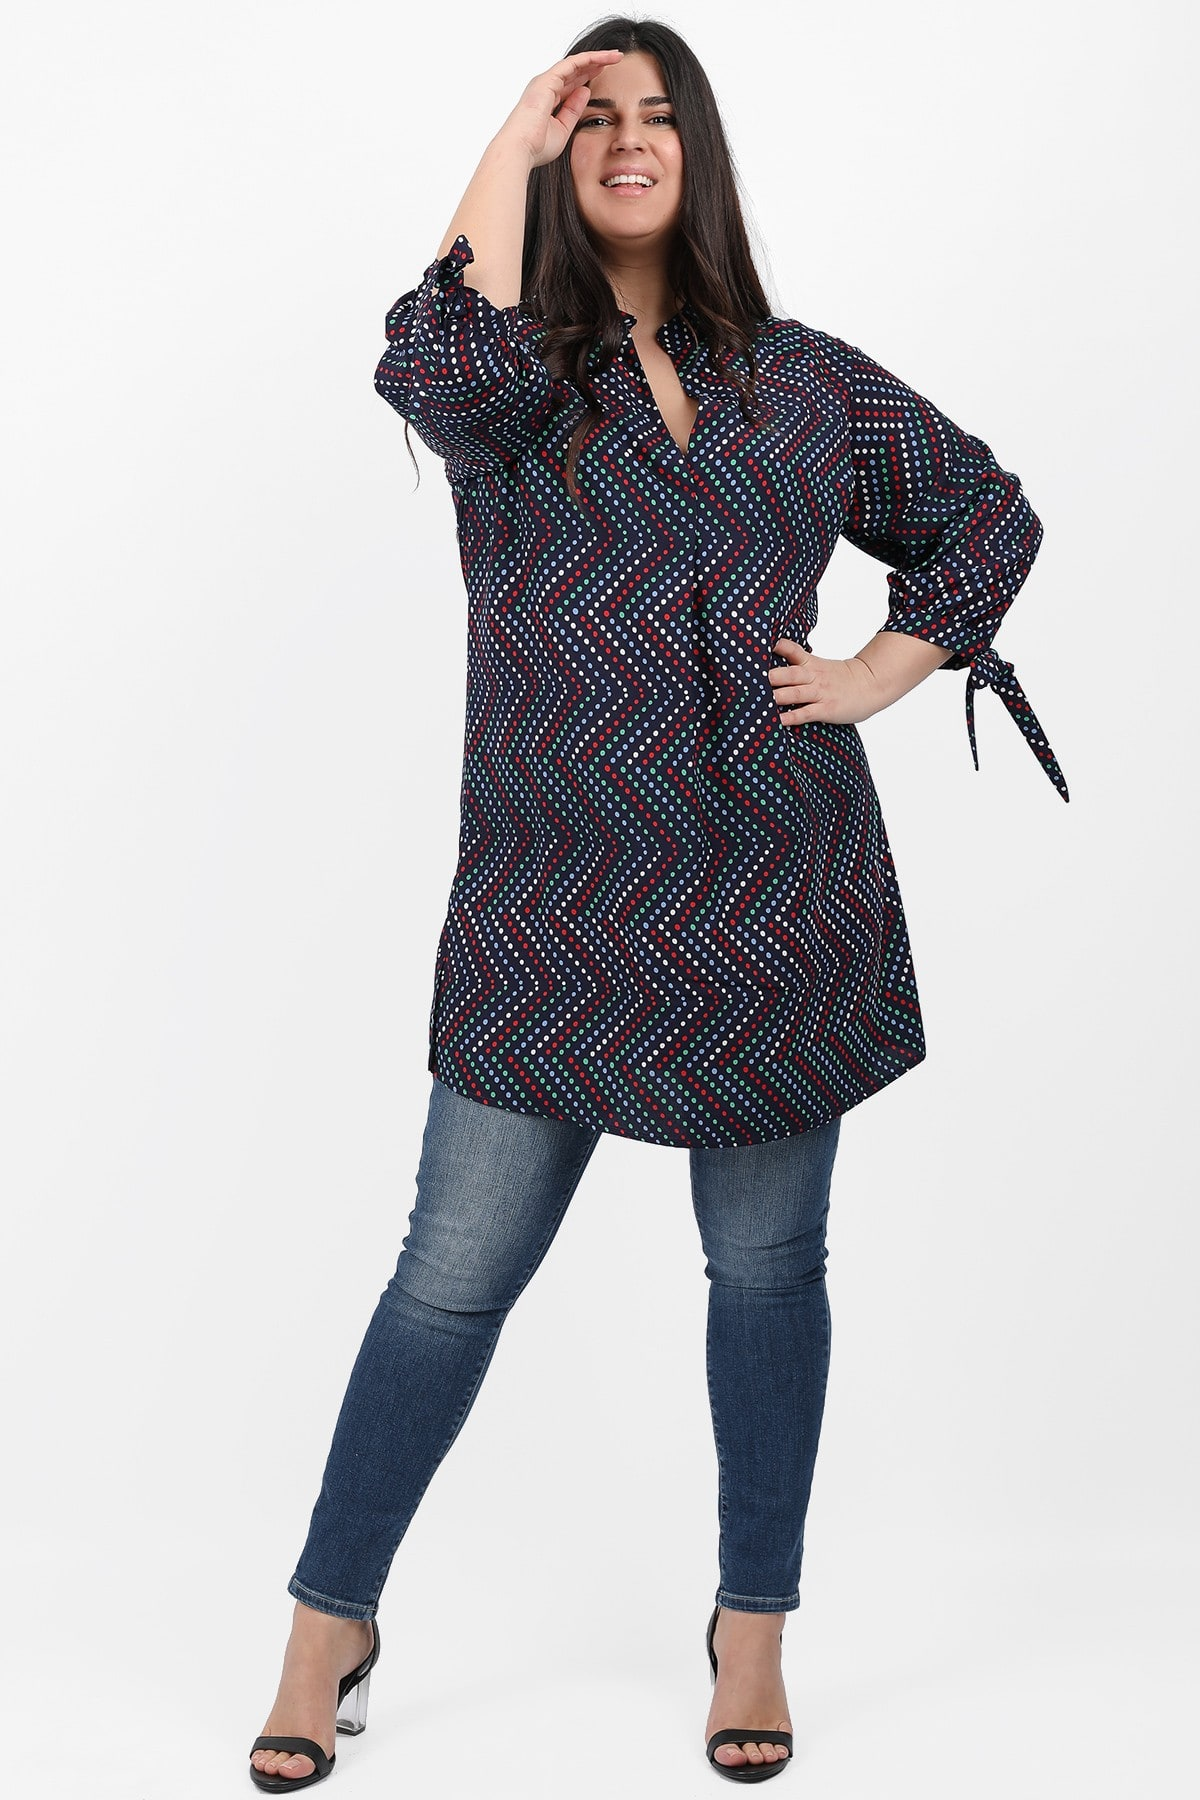 Tunic in colorblock dots print